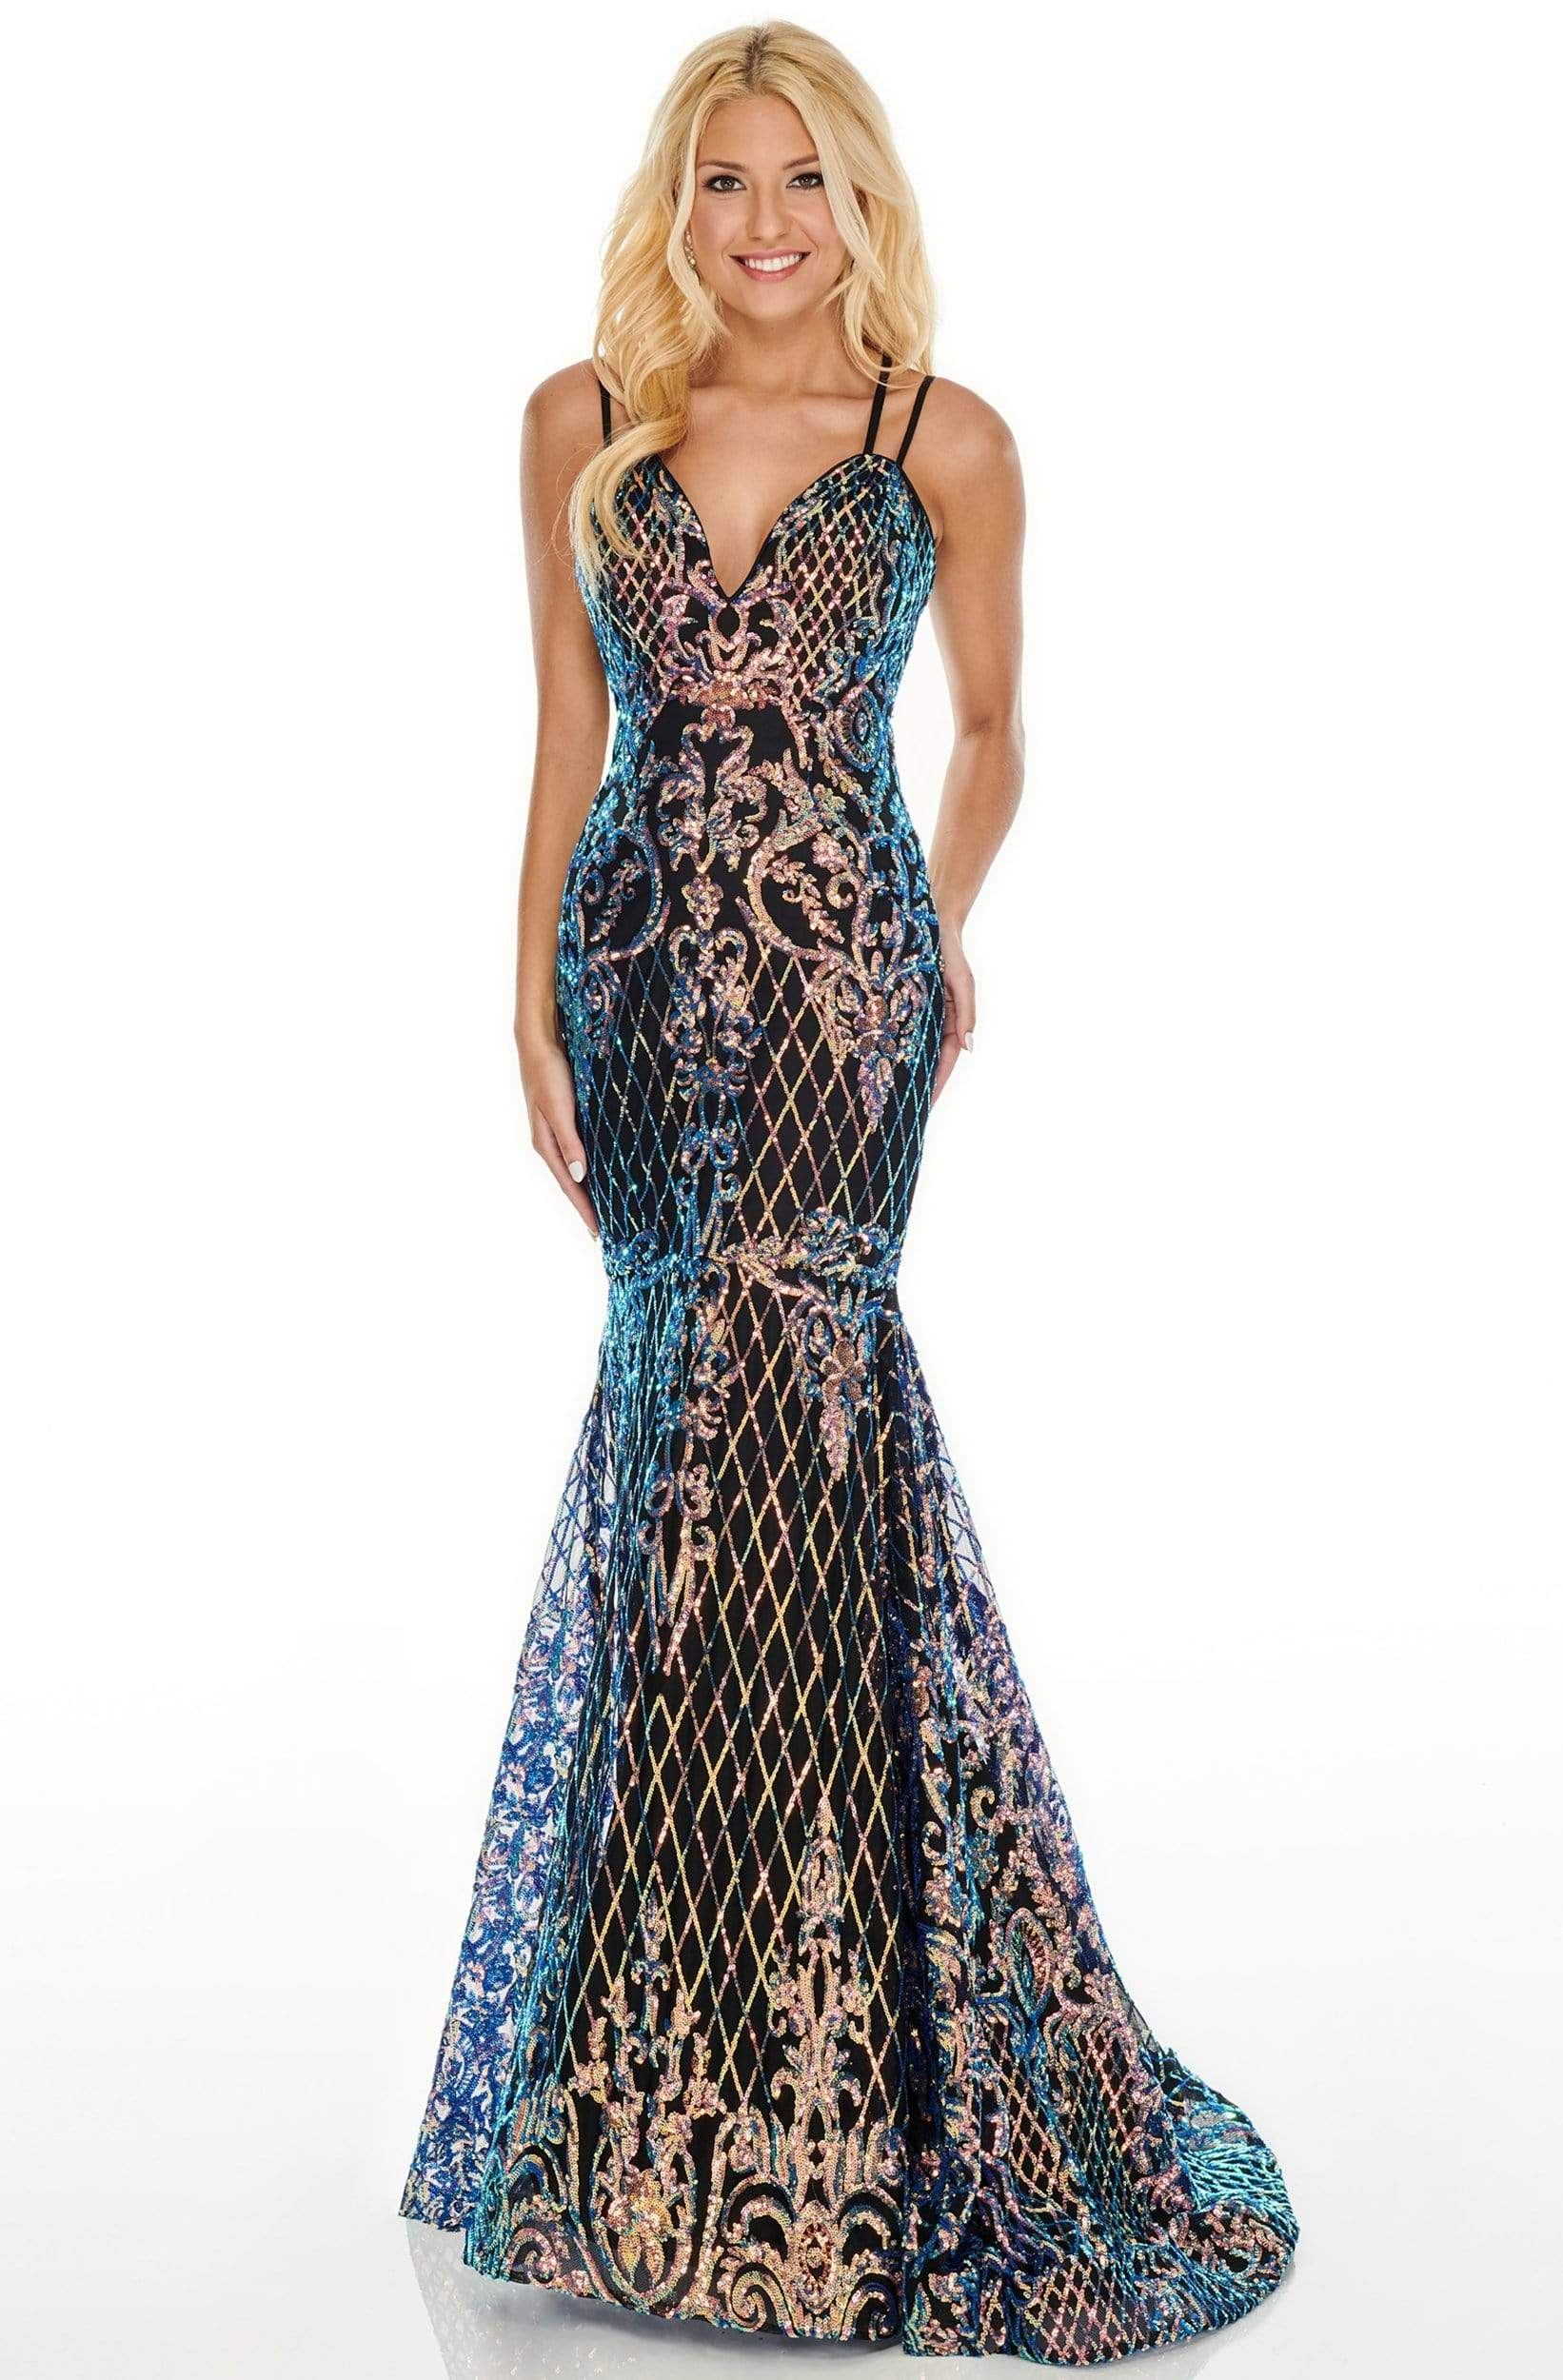 Rachel Allan Prom - 7010 Sequined V-Neck Mermaid Gown from Rachel Allan